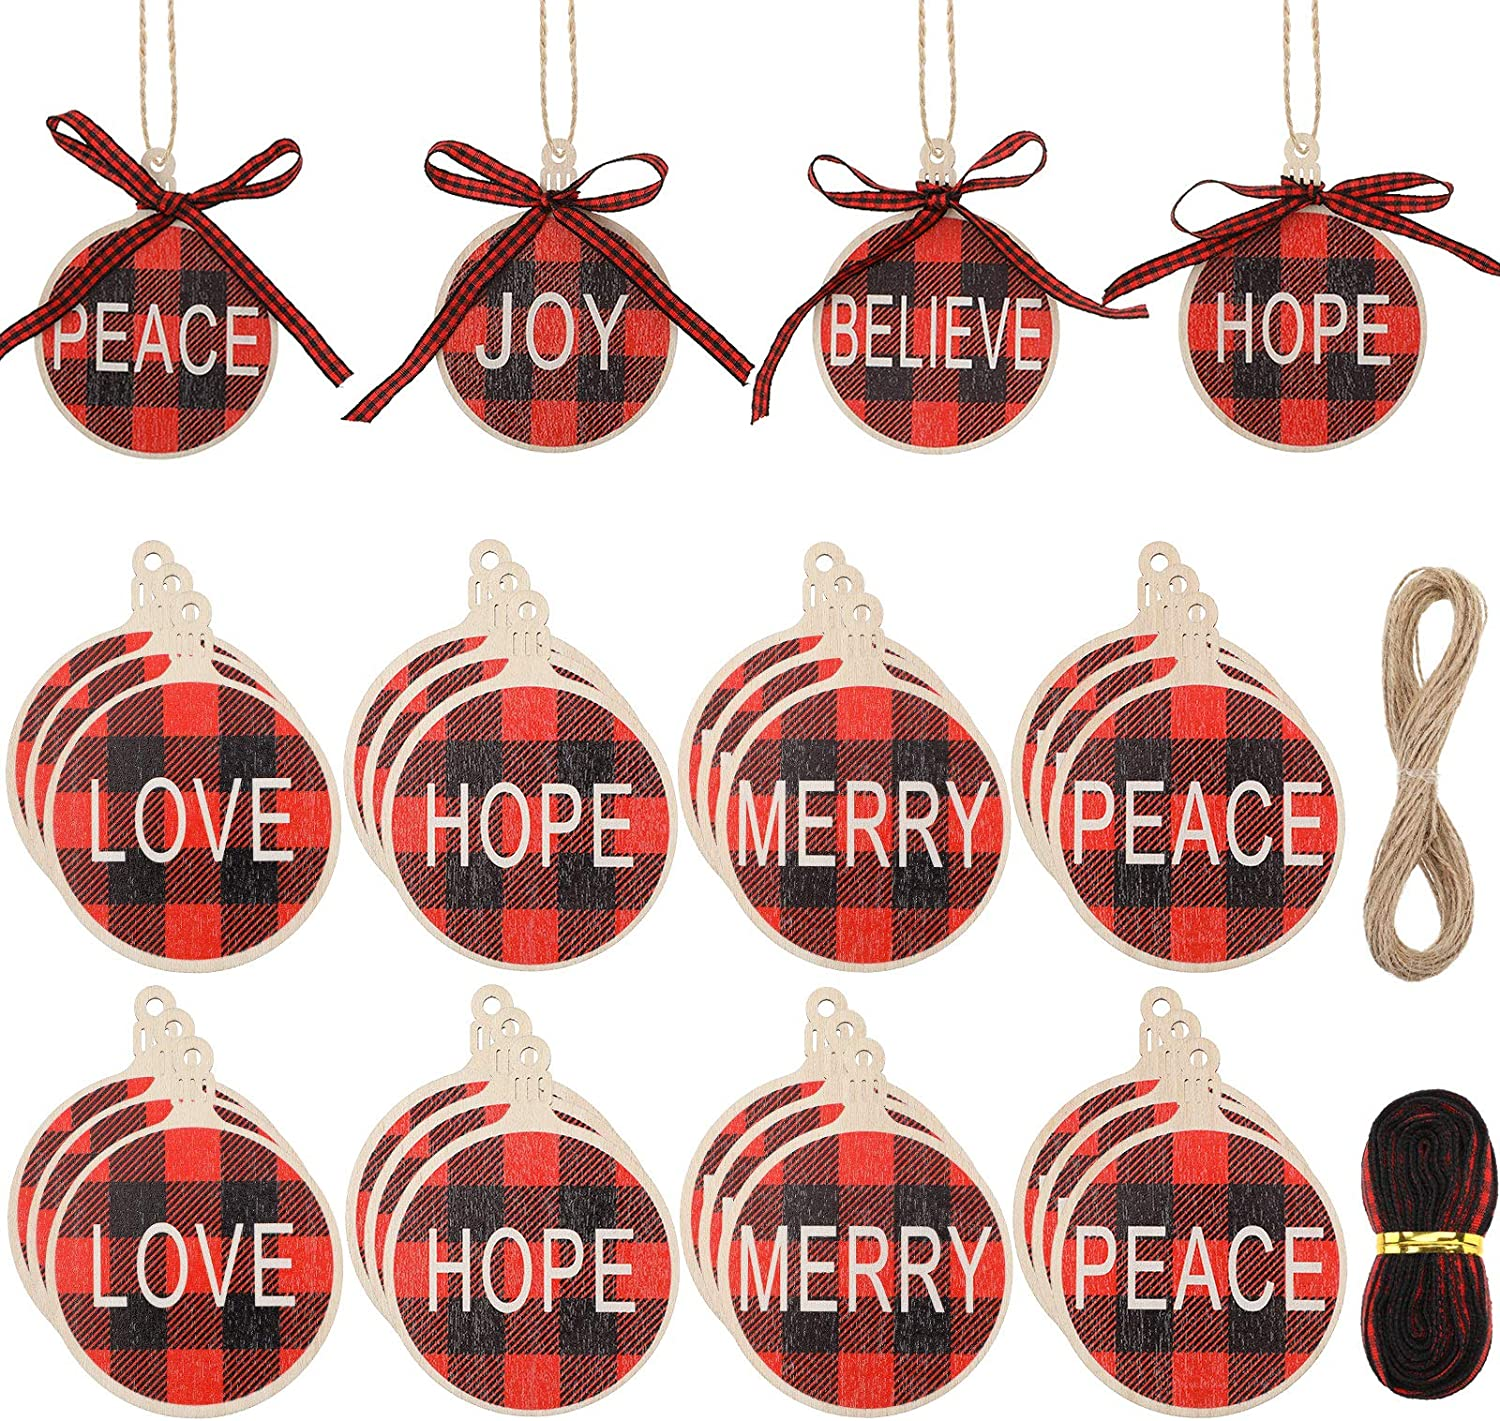 Jetec 18 Pieces Christmas Wooden Ornaments Buffalo Plaid Wishes Tree Ornaments Hanging Wood with Words Christmas Decor Wooden Crafts Pre-drilled for Centerpieces Holiday Hanging Decorations